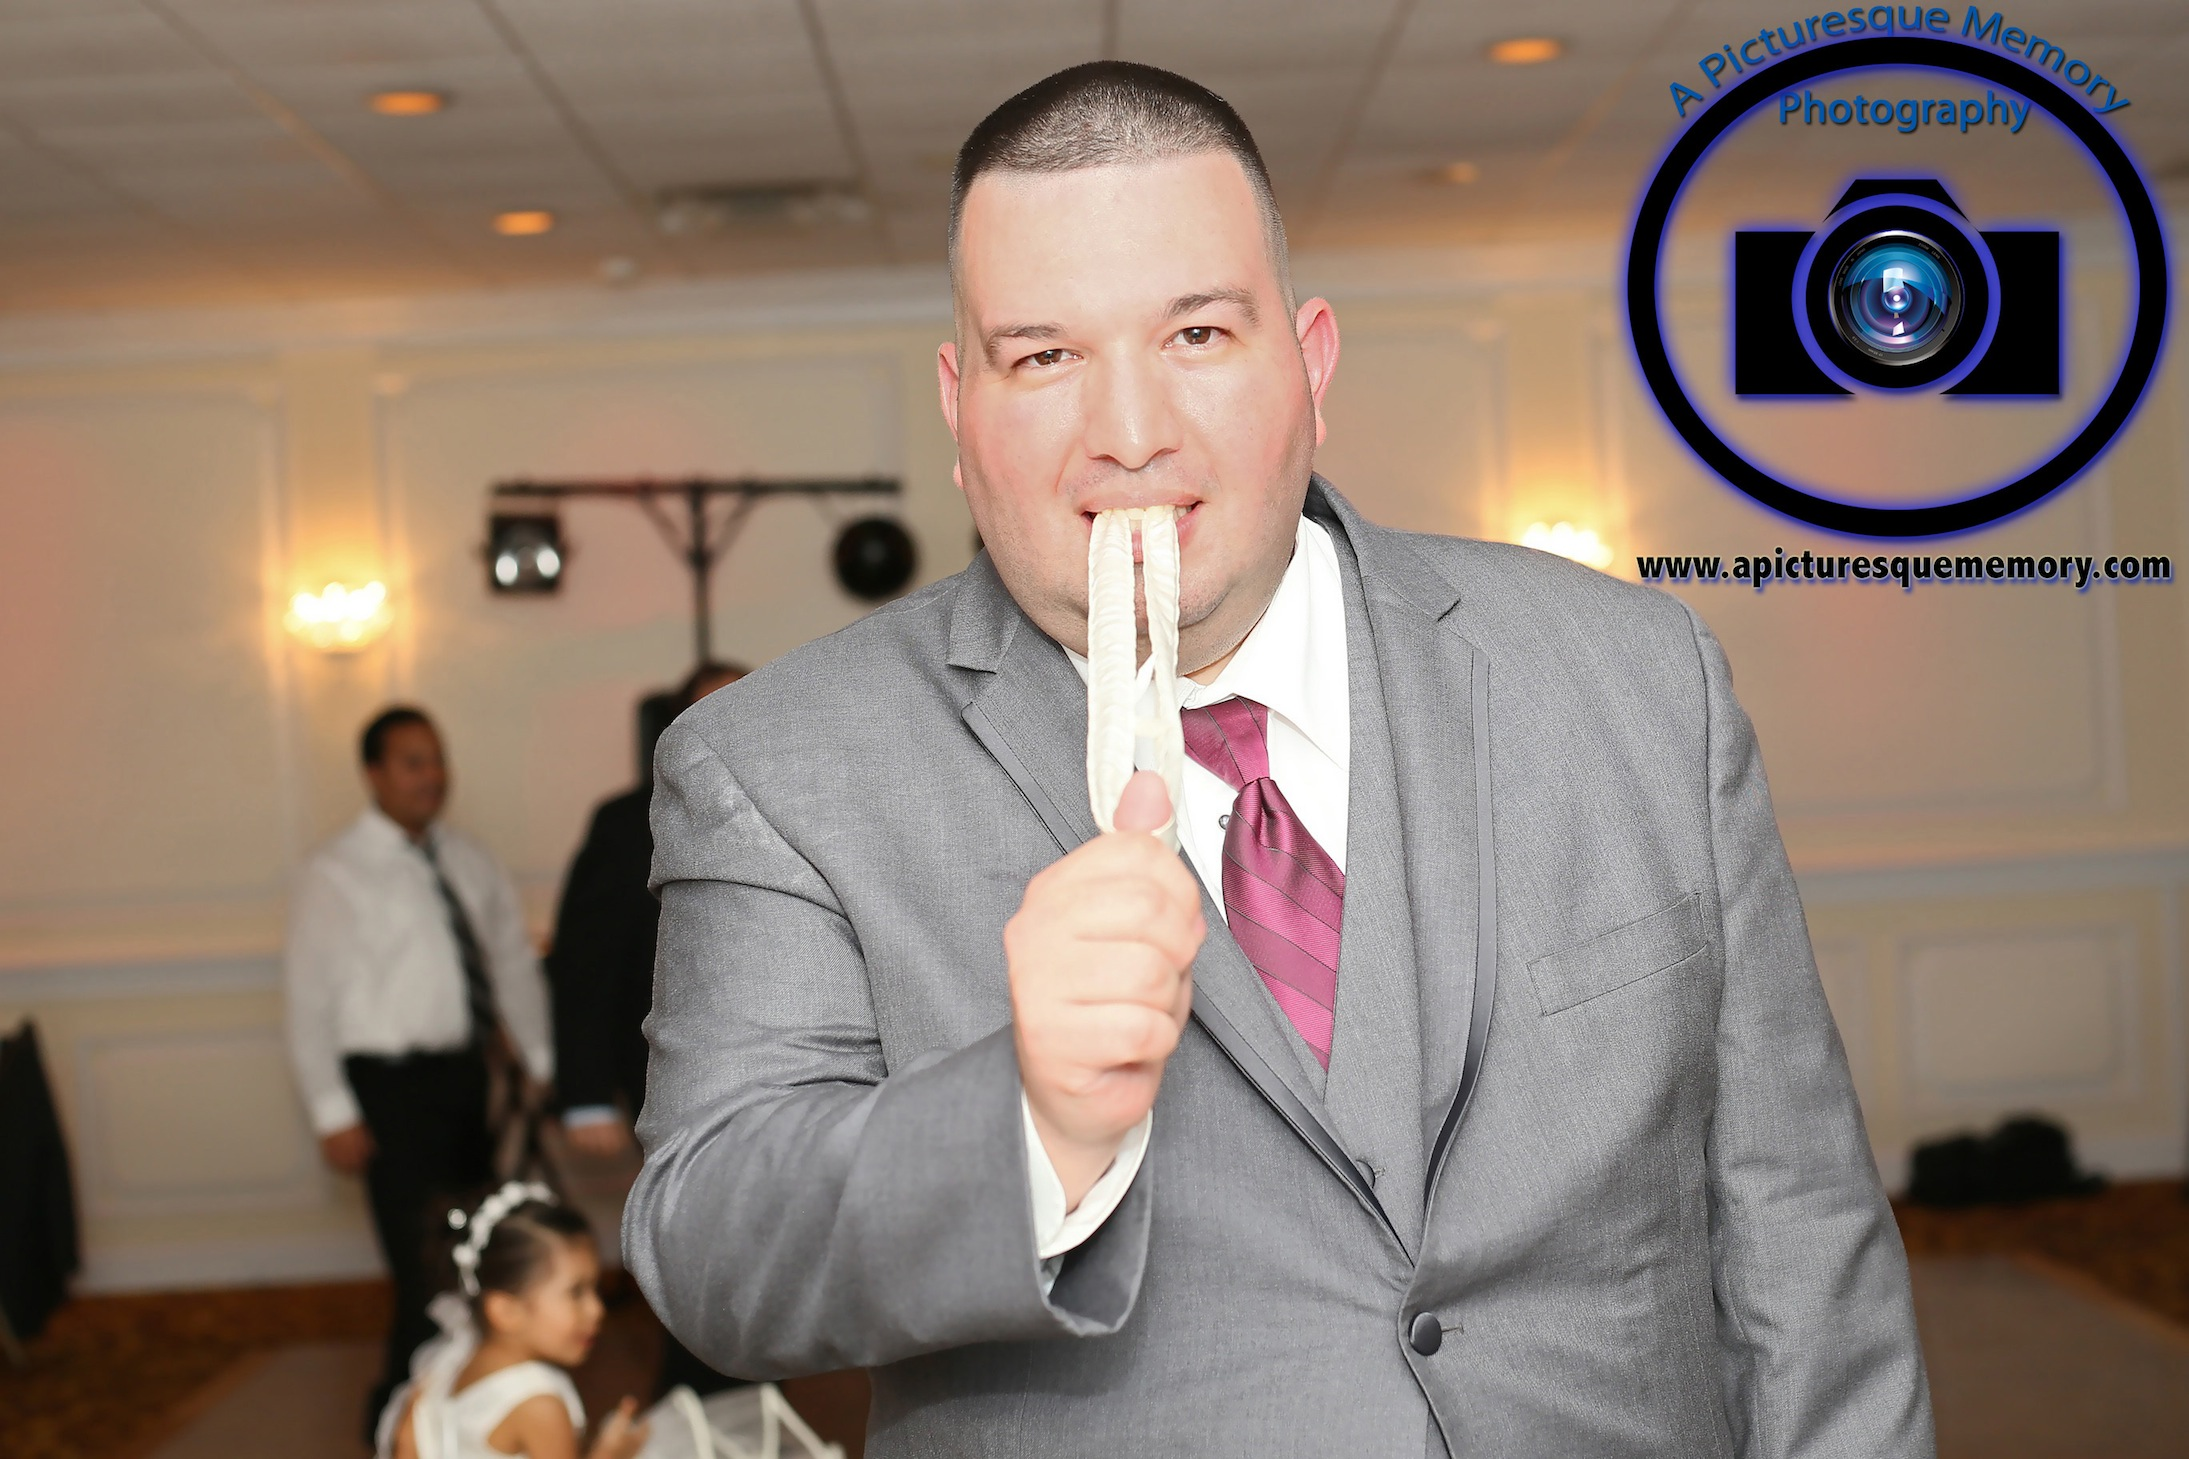 #njwedding, #njweddingphotography, #southbrunswickweddingphotographer#weddingphotos, #apicturesquememoryphotography, #pierresofsouthbrunswickweddingphotographer, #gartertoss, #groom